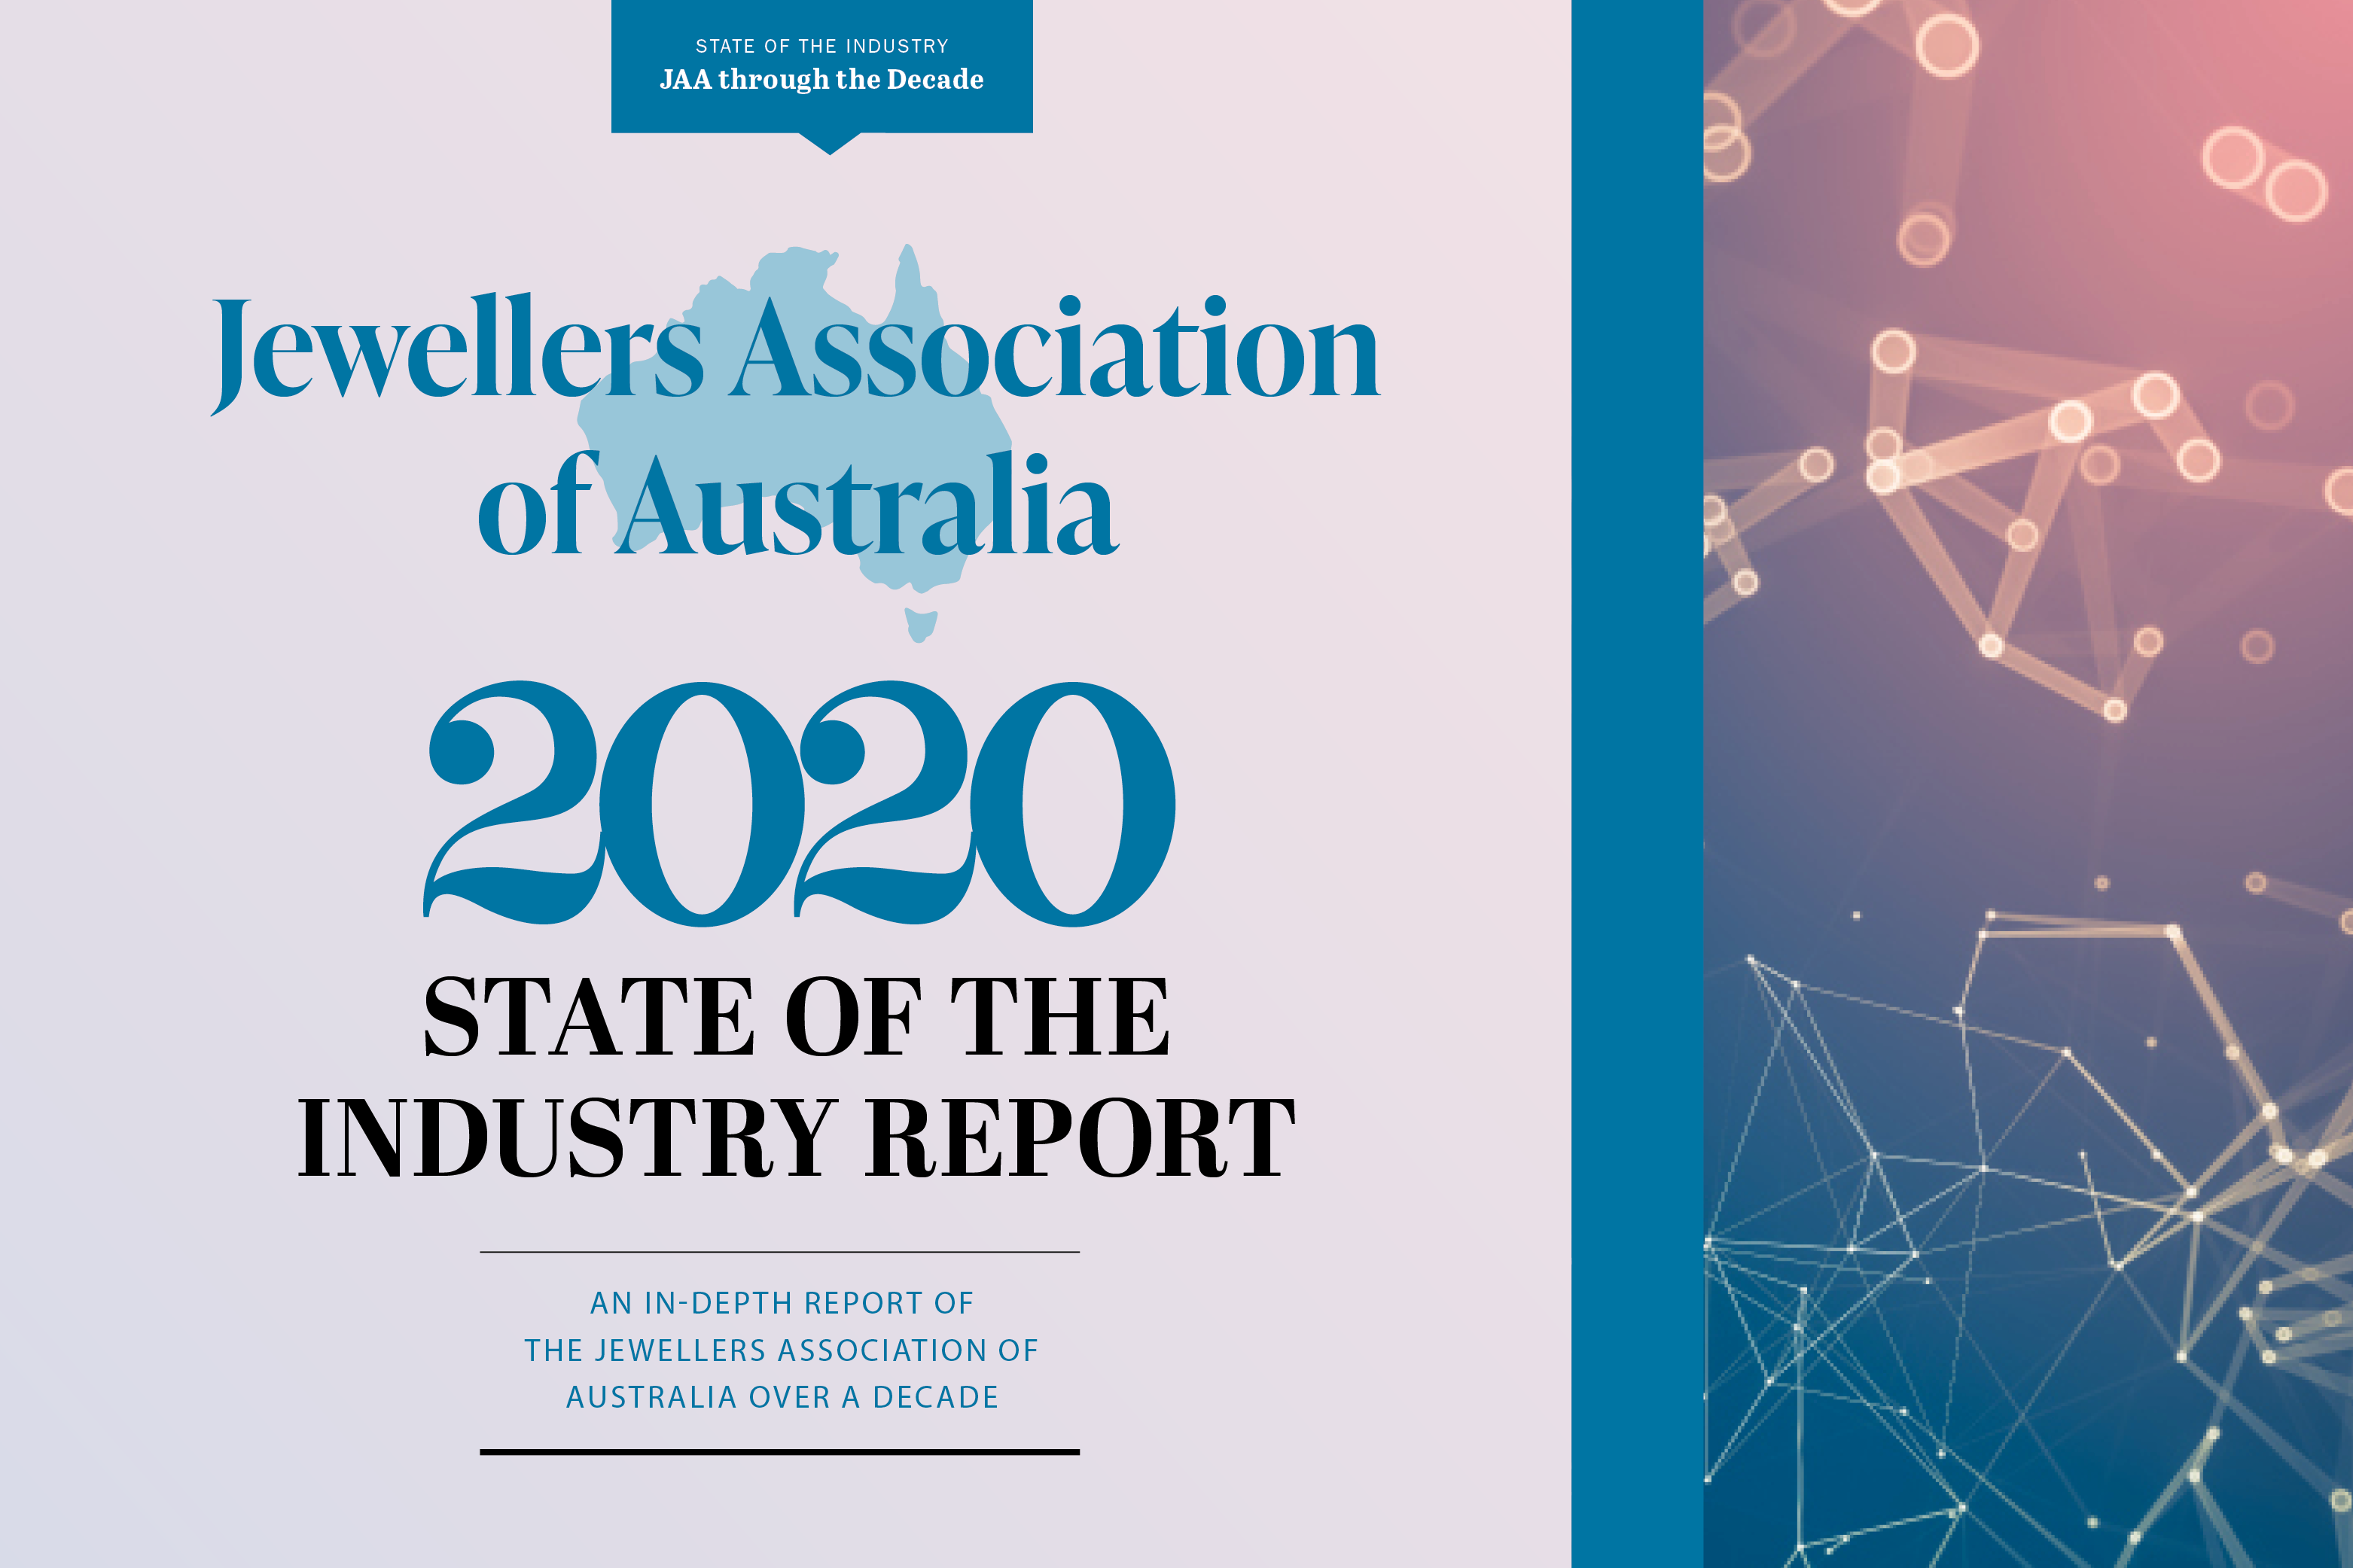 JAA's fall from grace: 2020 State of the Jewellery Industry Report